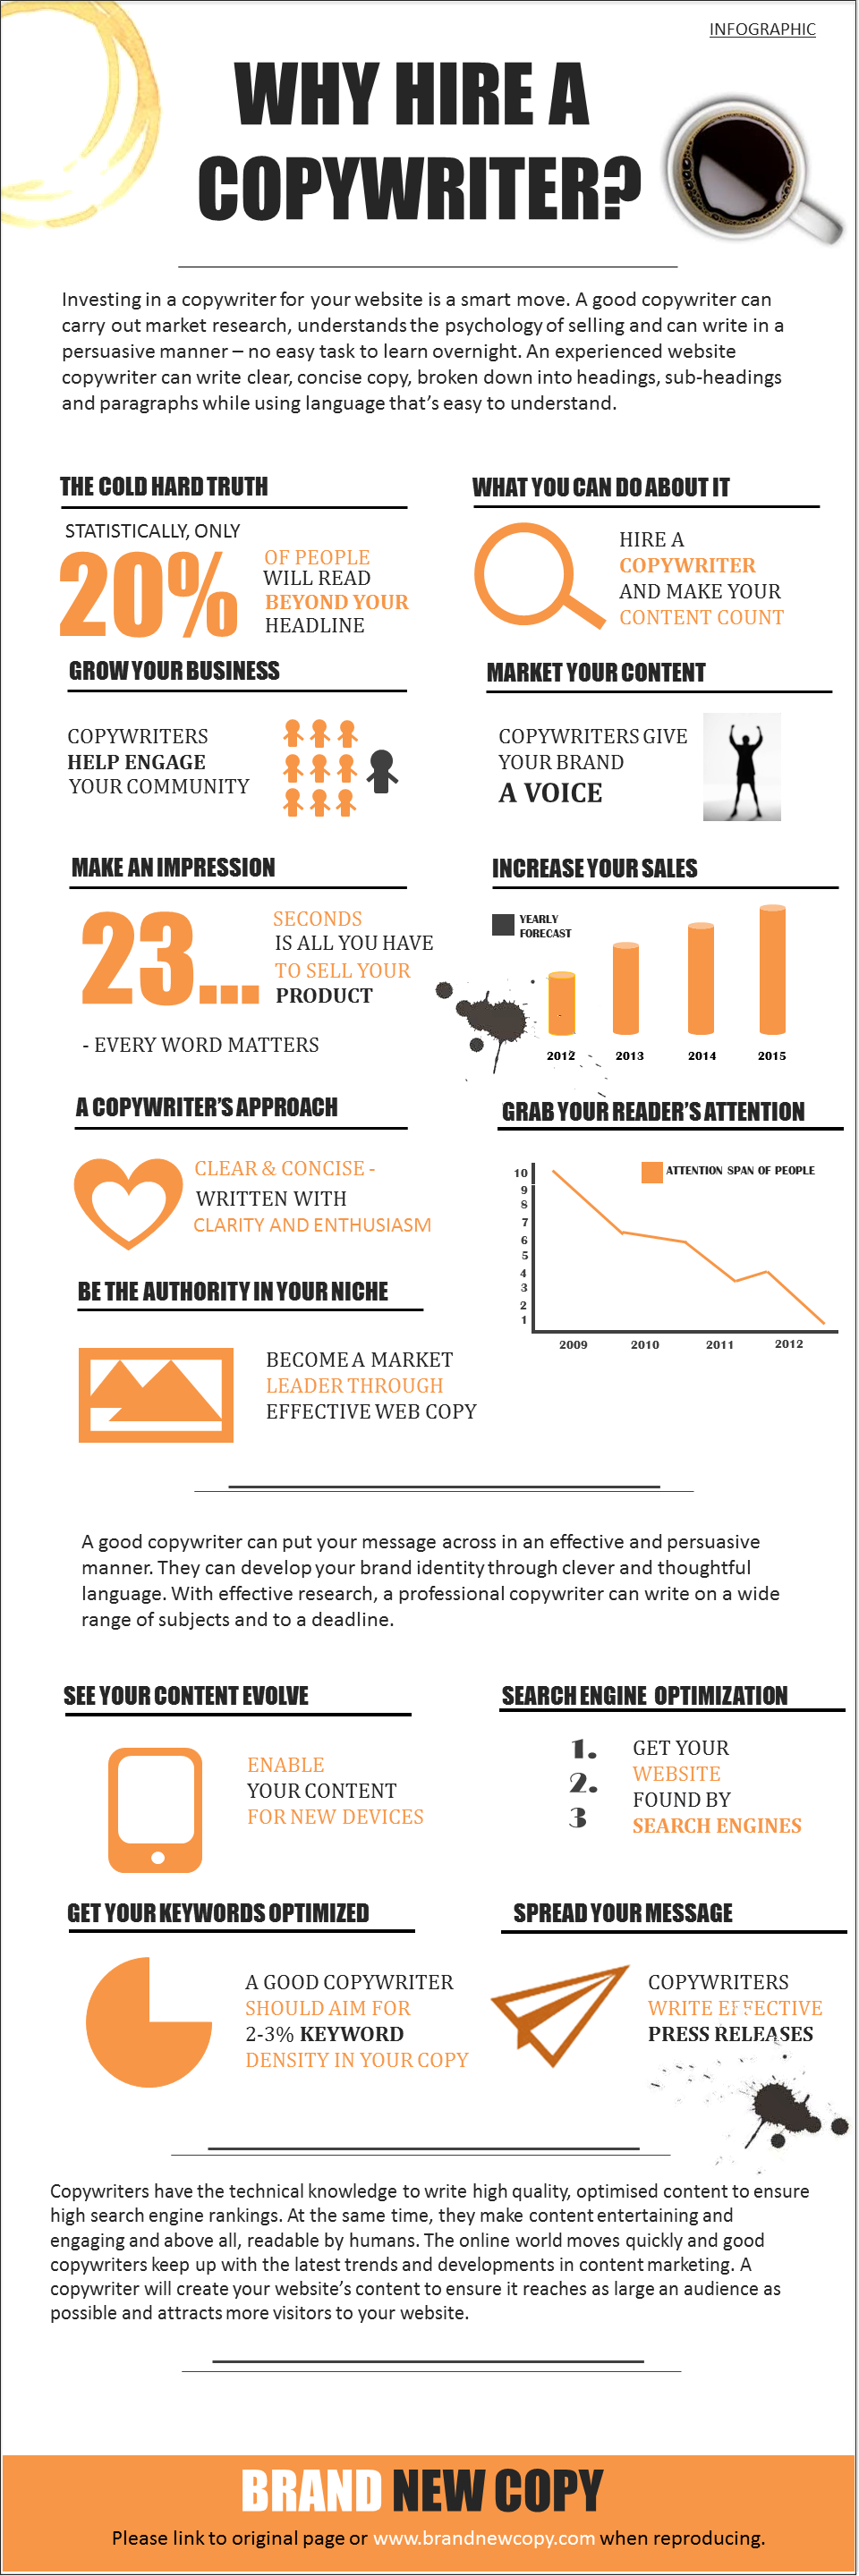 Why Hire a Copywriter - Infographic